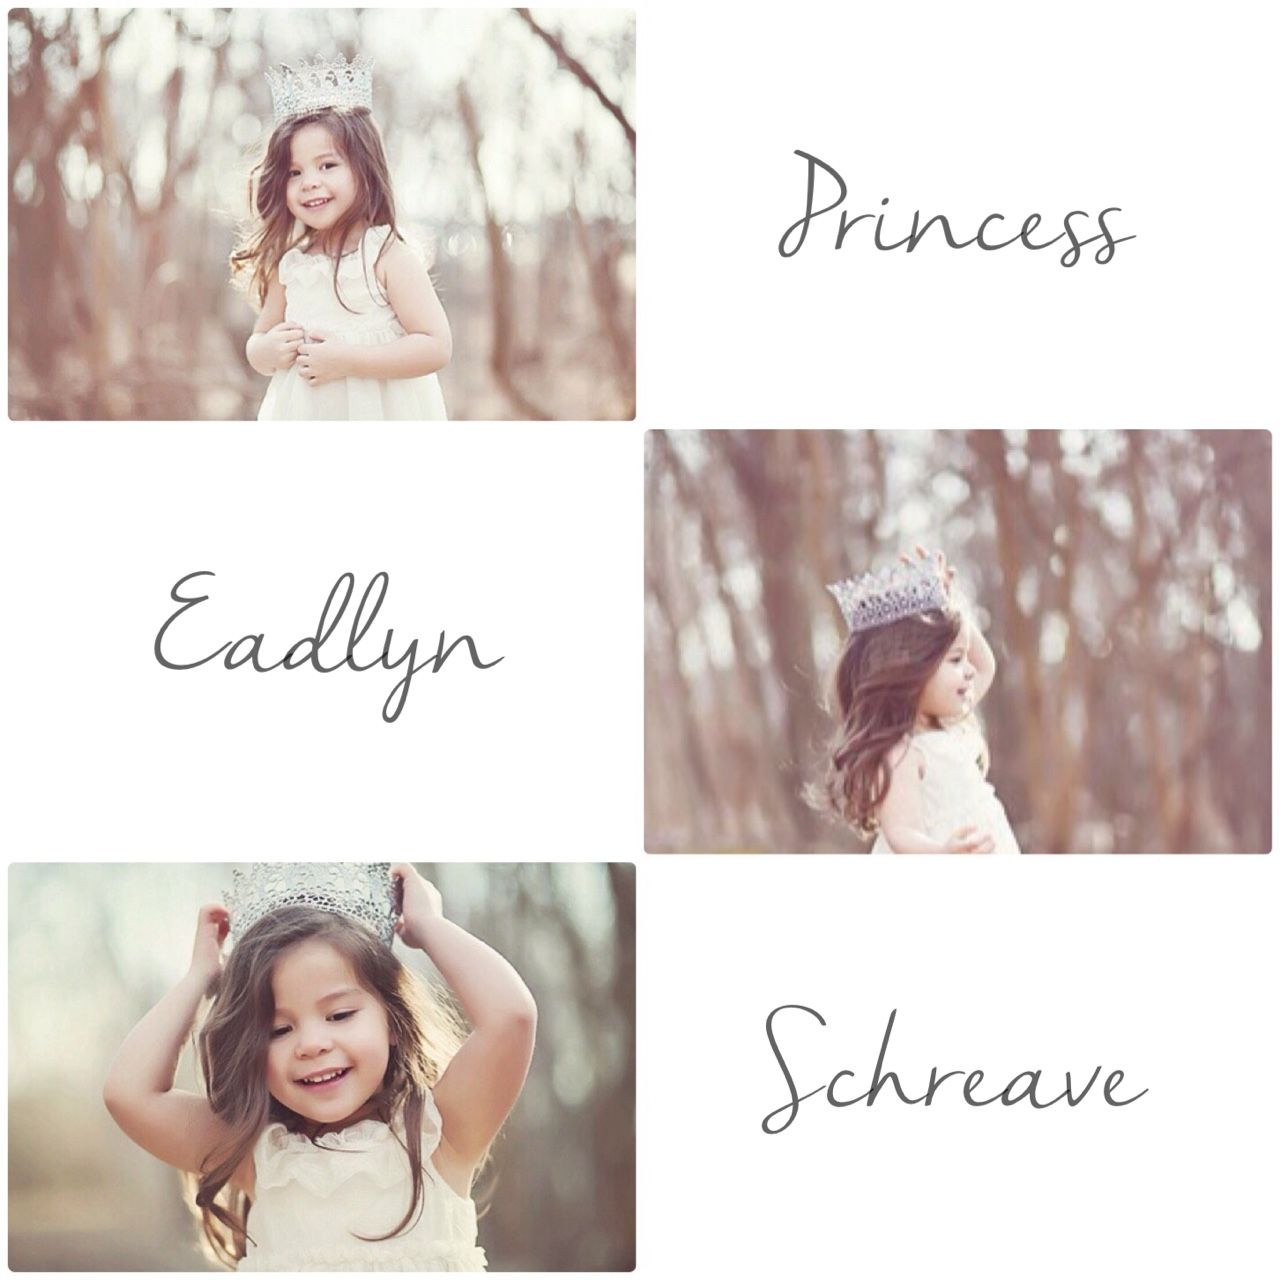 The Selection Series — selectionseries: Princess Eadlyn Schreave -The...